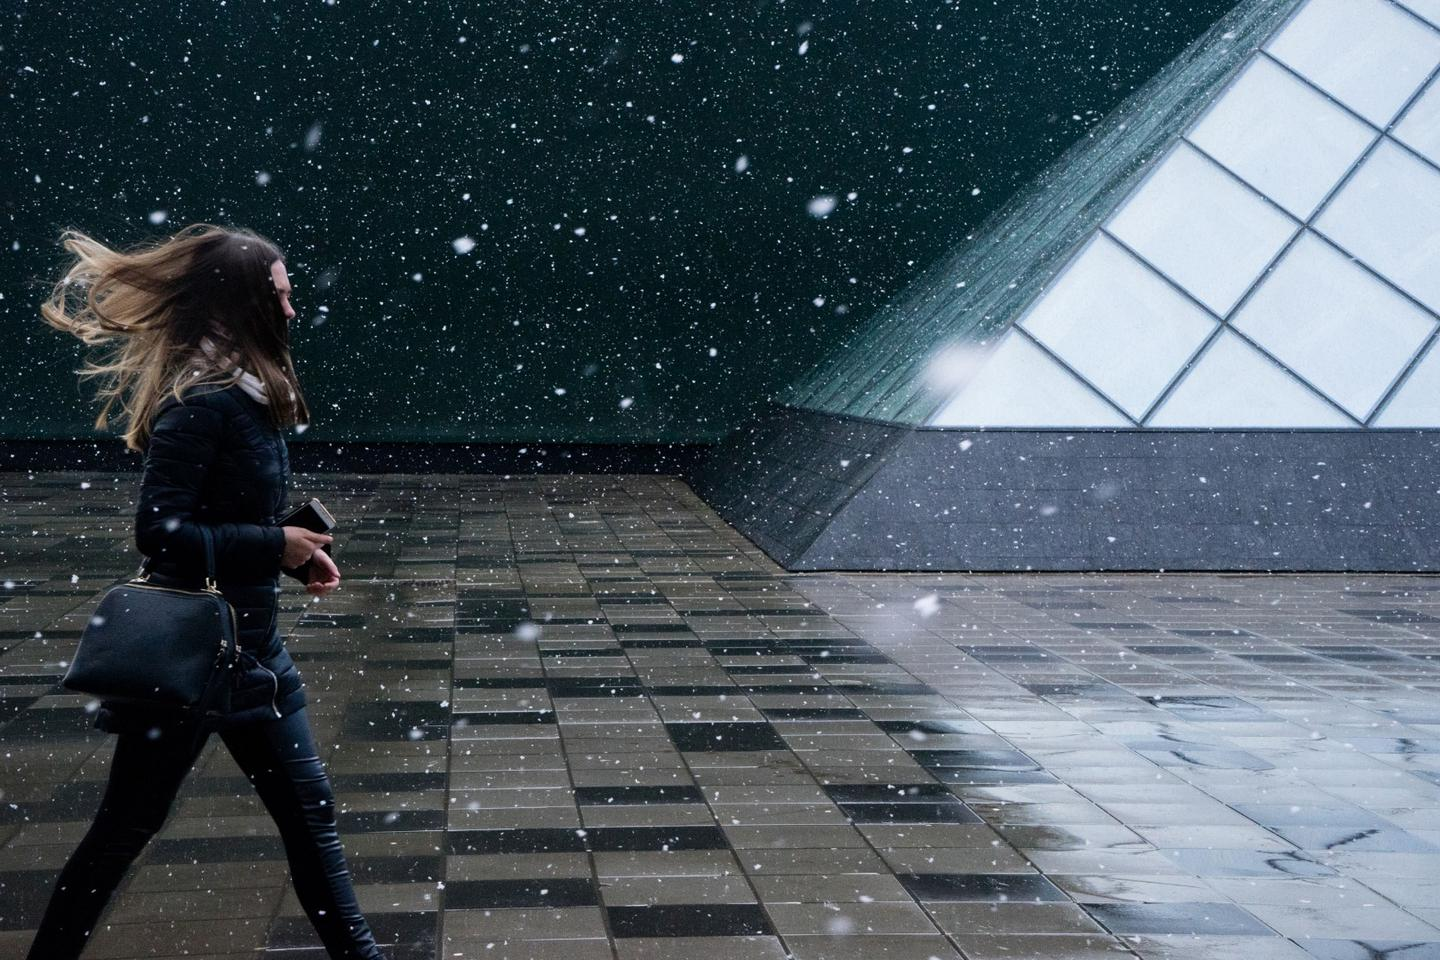 Winner of the Travel category. Spring Snow  is a capture of a woman walking in a magical light snowfall, backgrounded by beautiful geometries